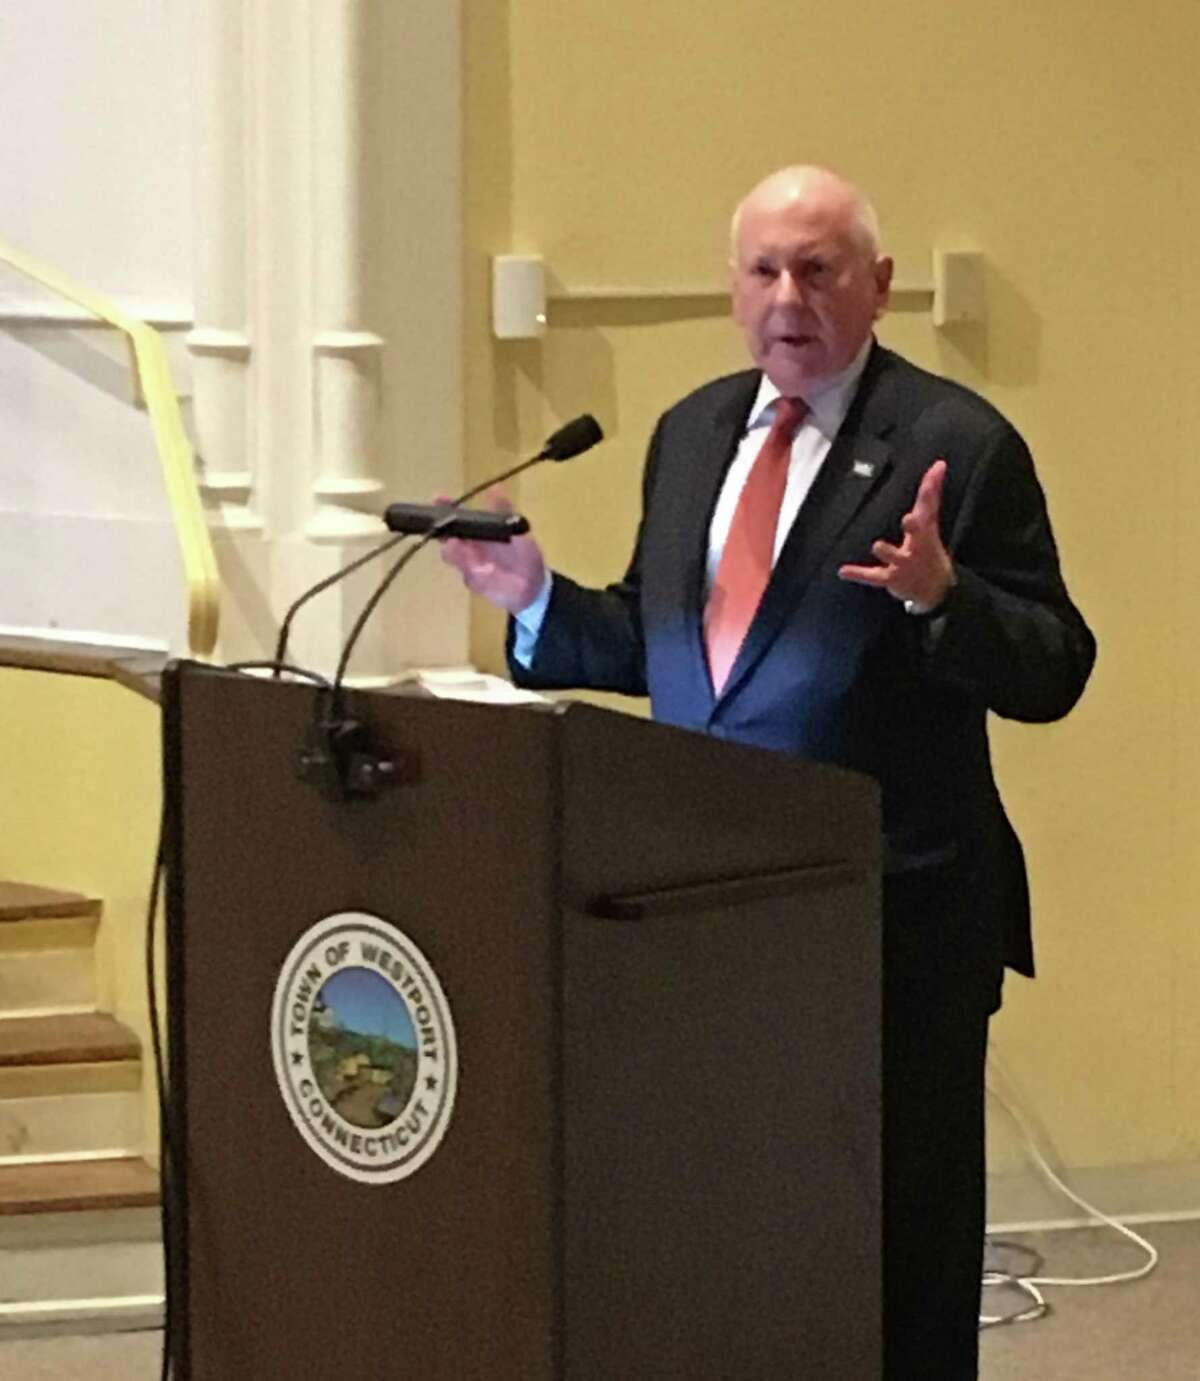 Westport First Selectman Jim Marpe spoke at the Feb. 6 Representative Town Meeting in Town Hall in support of RTM Deputy Moderator Jeffrey Wieser's nomination as the alternate representative to the Western Conn. Council of Governments.